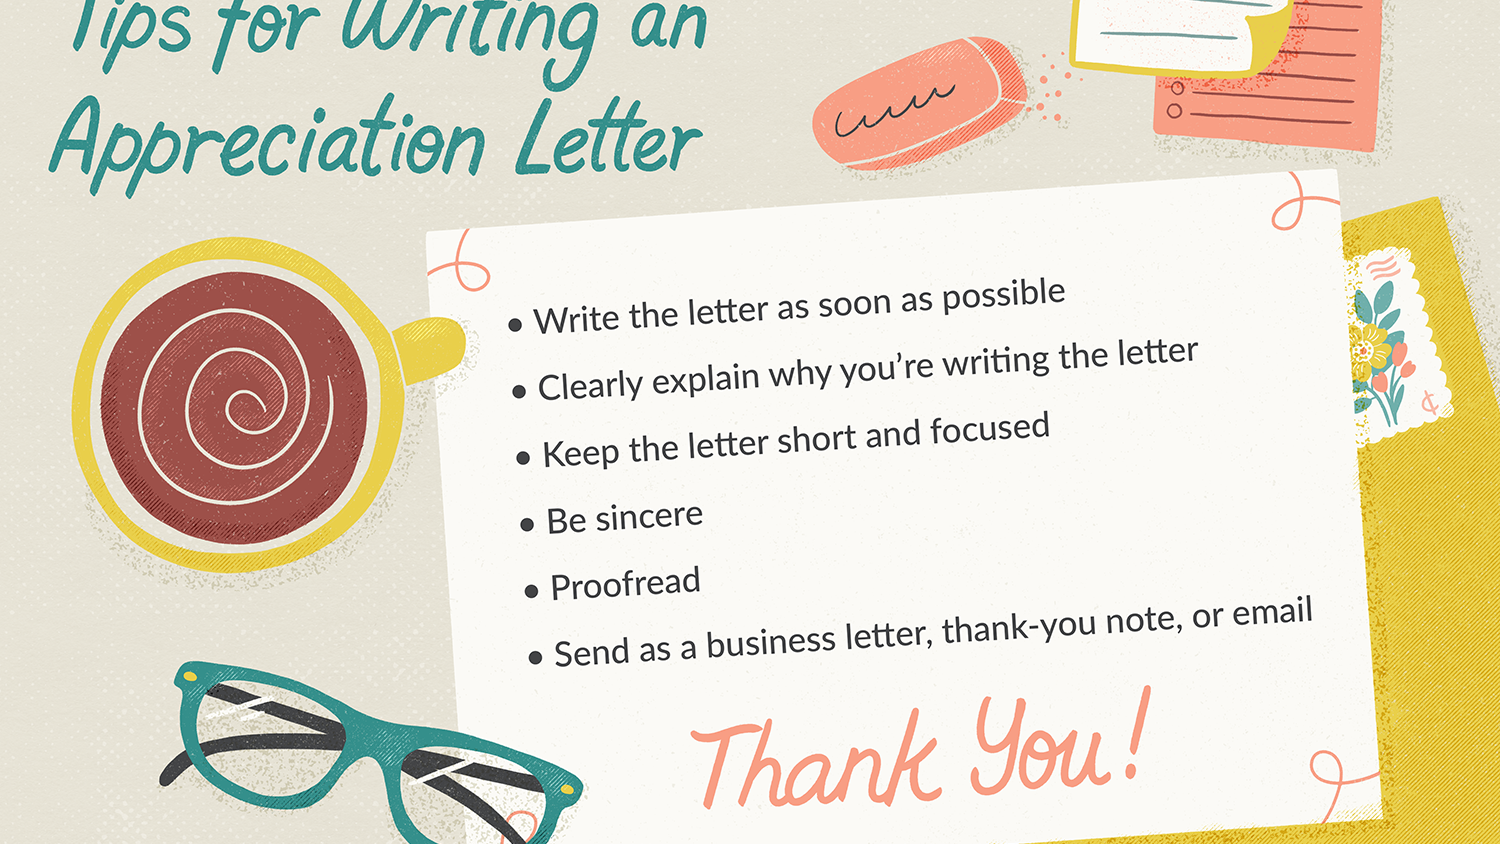 Appreciation Letter Examples and Writing Tips